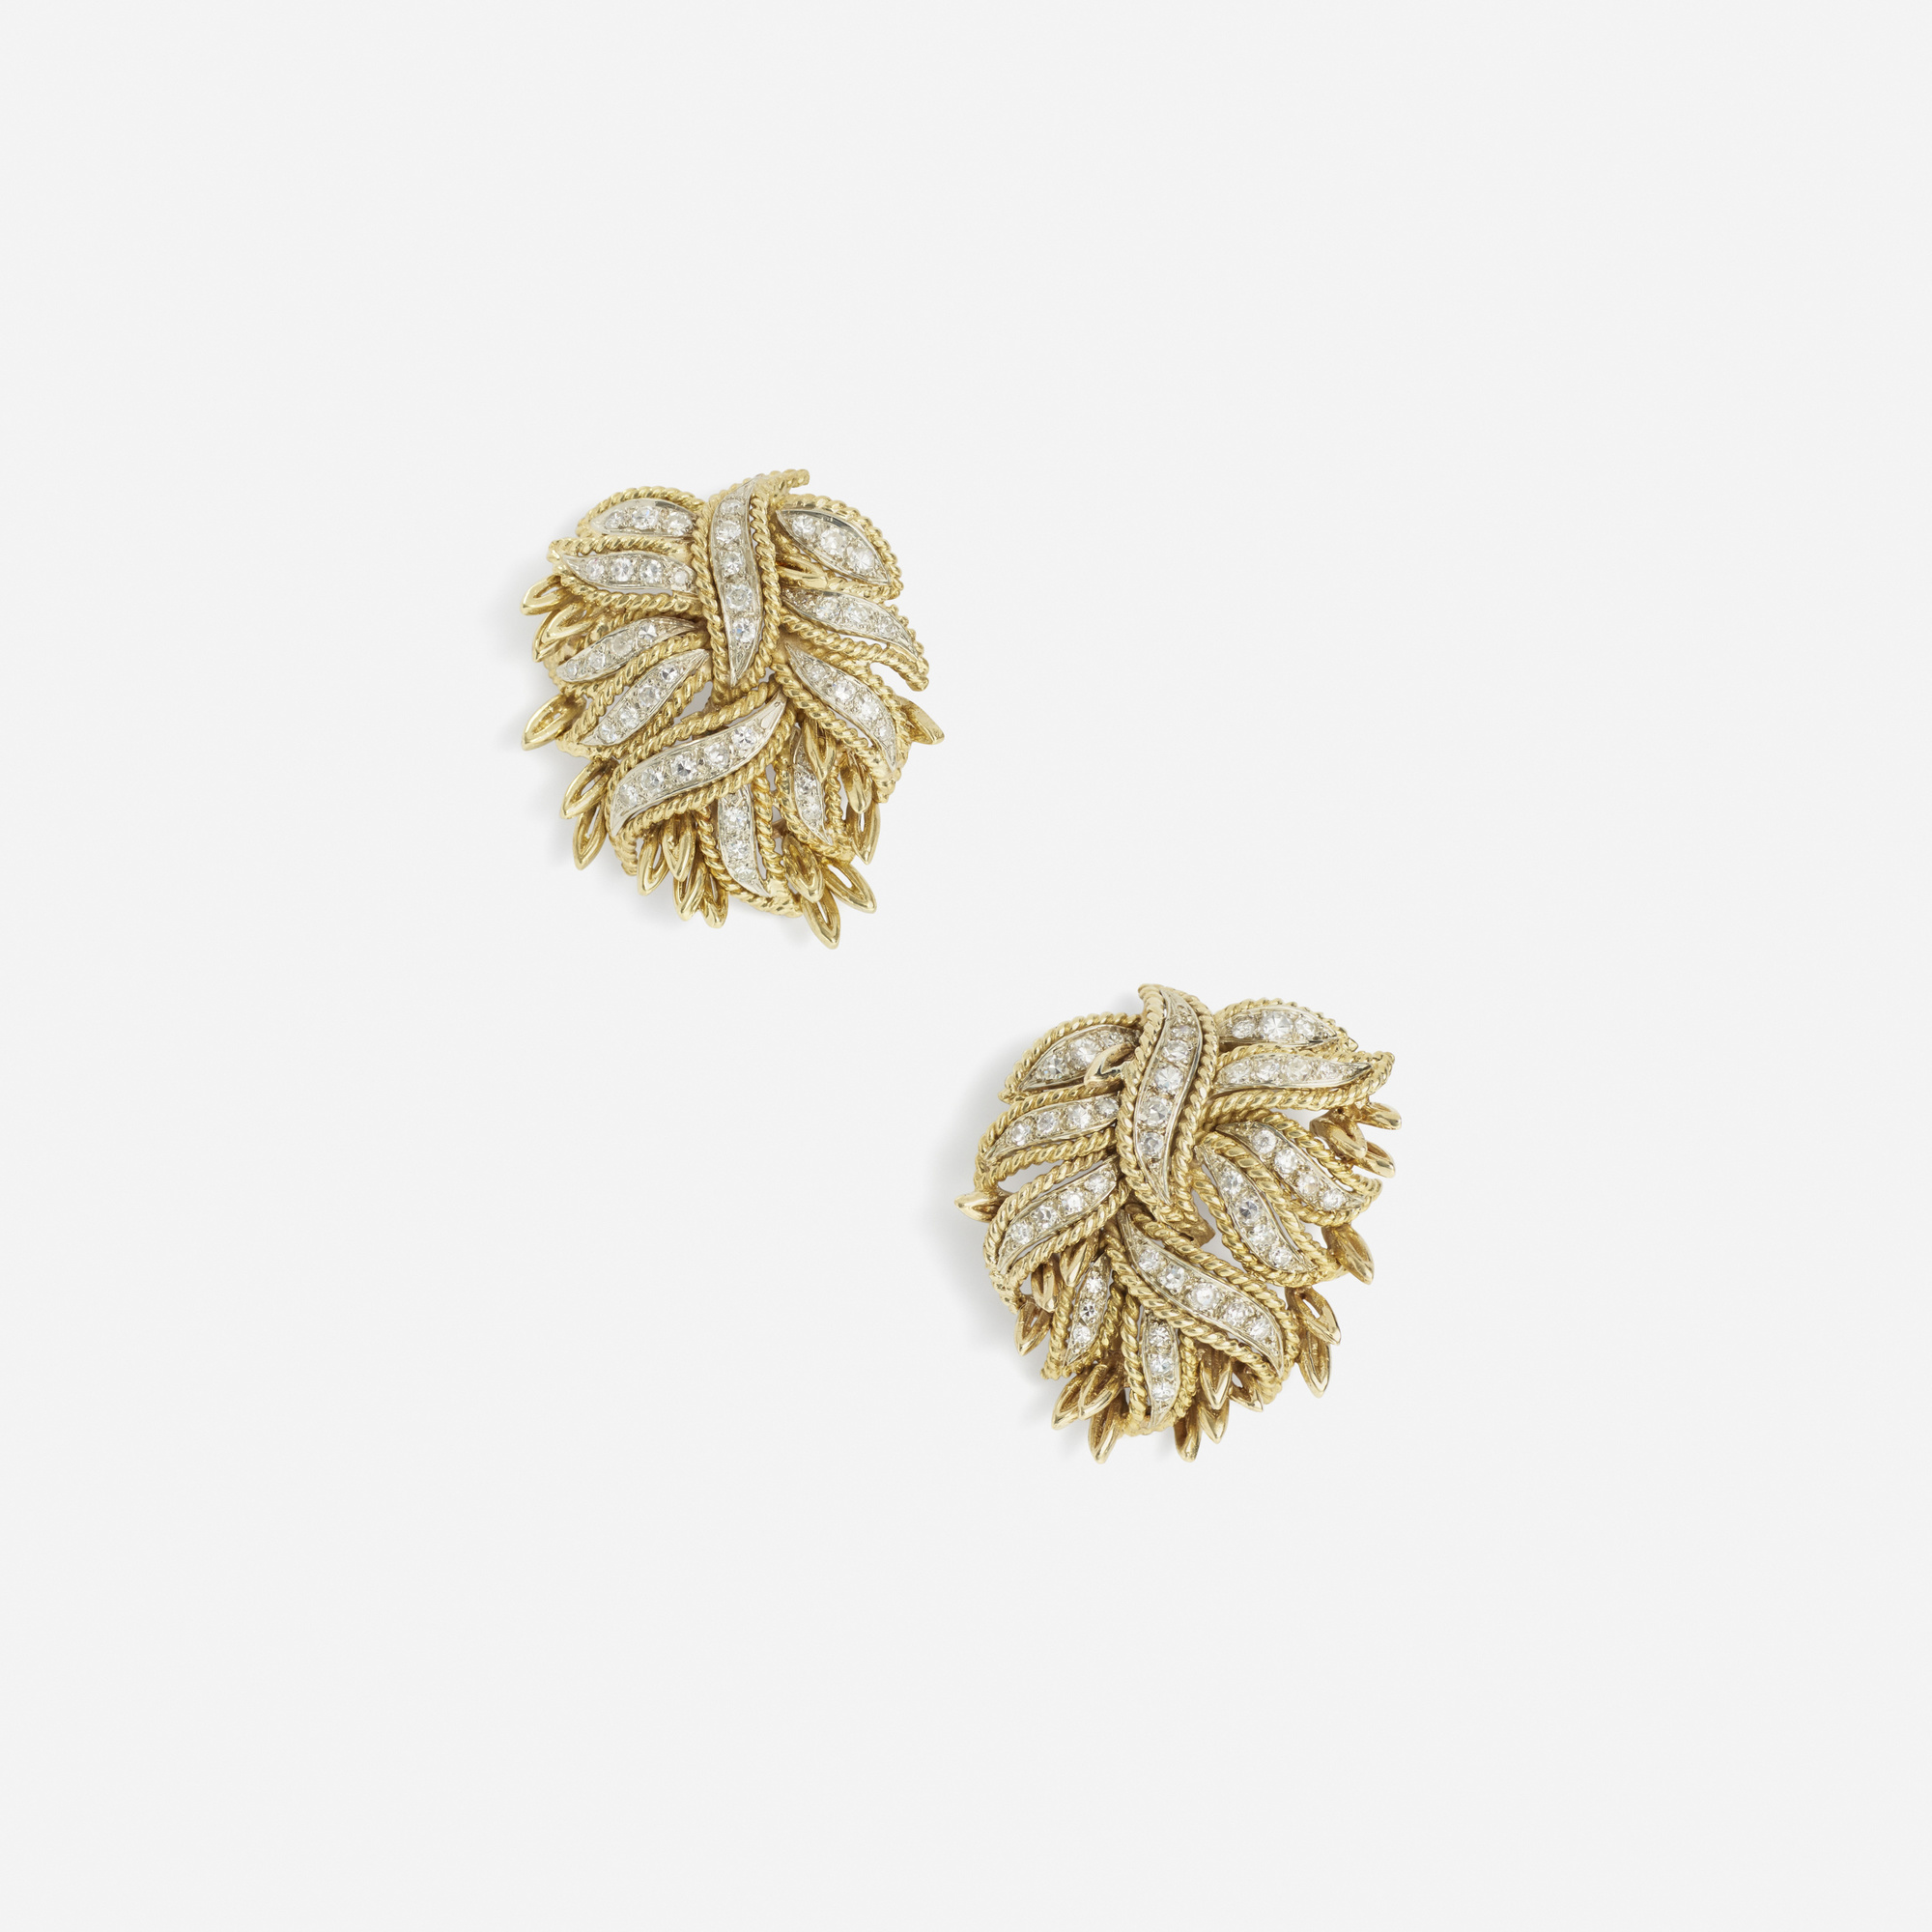 156:  / A pair of gold and diamond earrings (1 of 1)